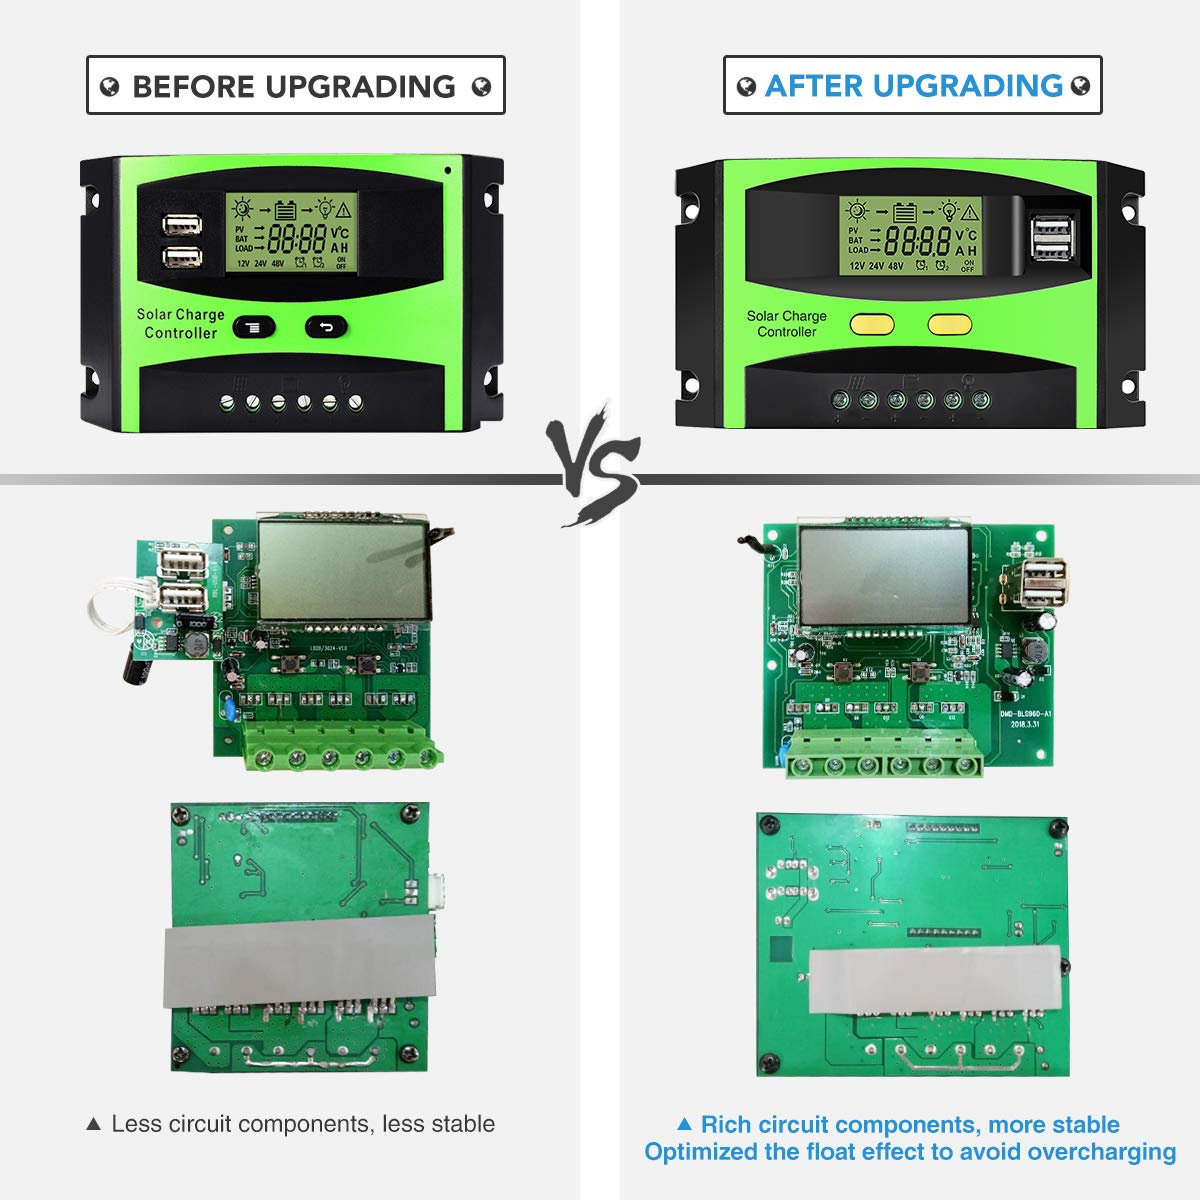 MOHOO Solar Charge Controller, 30A Solar Charger Controller, 12V/24V Solar Panel Intelligent Regulator with Dual USB Port and PWM LCD Display by MOHOO (Image #4)